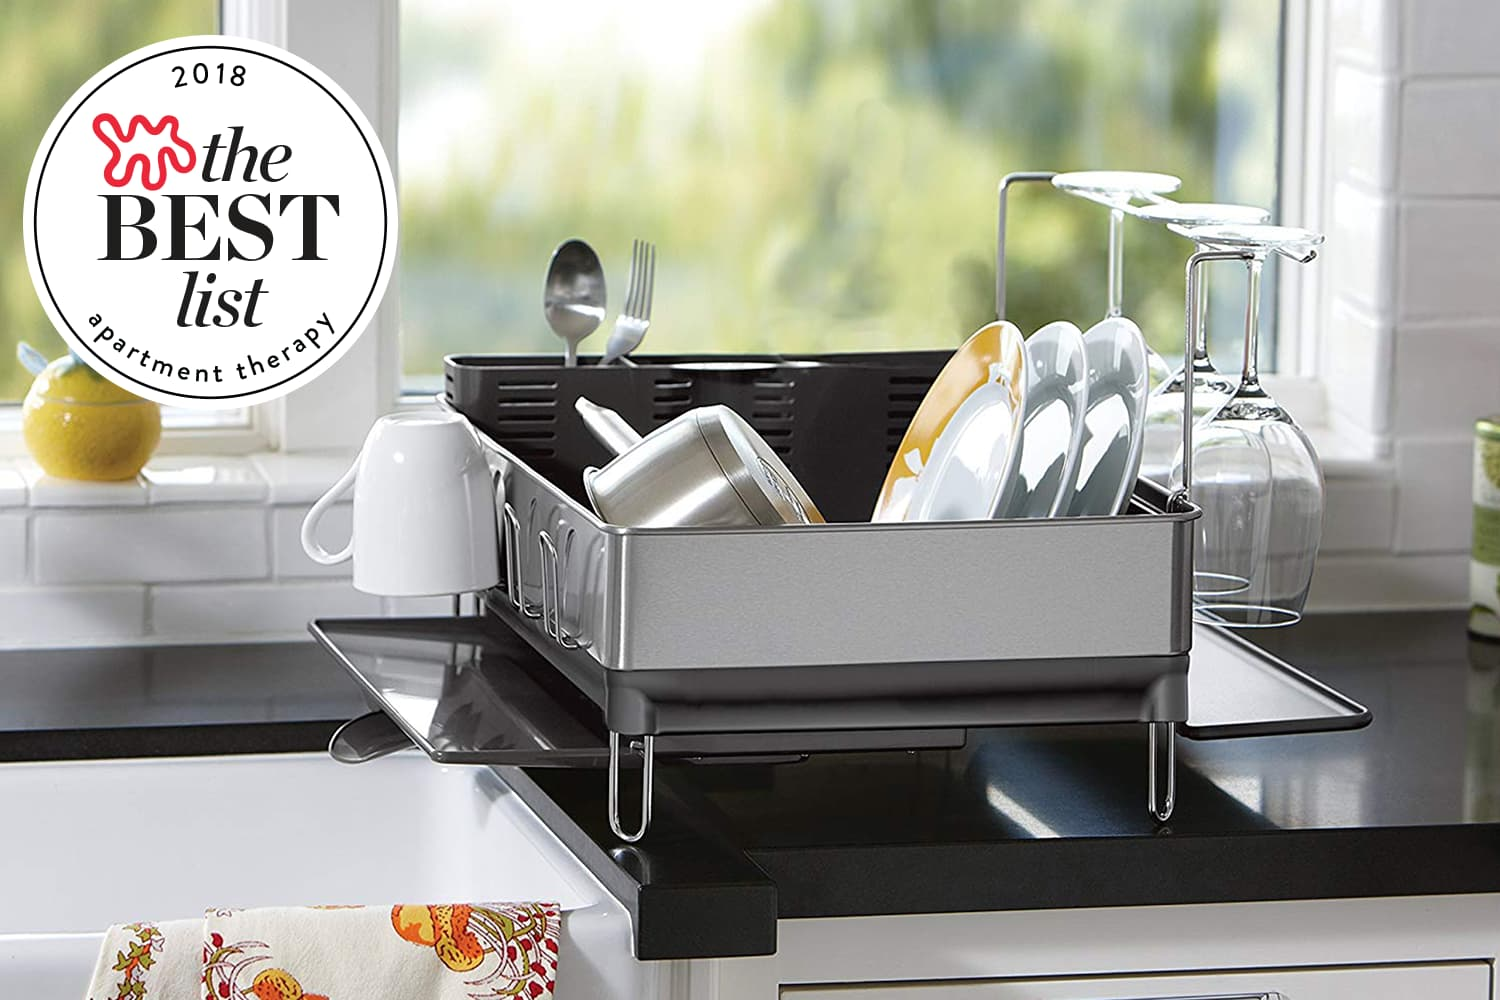 The Best Dish Racks | Apartment Therapy U Style Kitchen Sink Mats on black kitchen mats, kitchen cabinet mats, kitchen countertop mats, kitchen slice mats, industrial kitchen mats, kitchen door mats, kitchen chair mats, shower mats, kitchen drain mats, kitchen table mats, kitchen rugs and mats, kitchen floor mat, kitchen area mats, padded kitchen mats, kitchen heat mats, decorative kitchen mats, colorful kitchen mats, kitchen mats product, kitchen counter mats, bathtub mats,